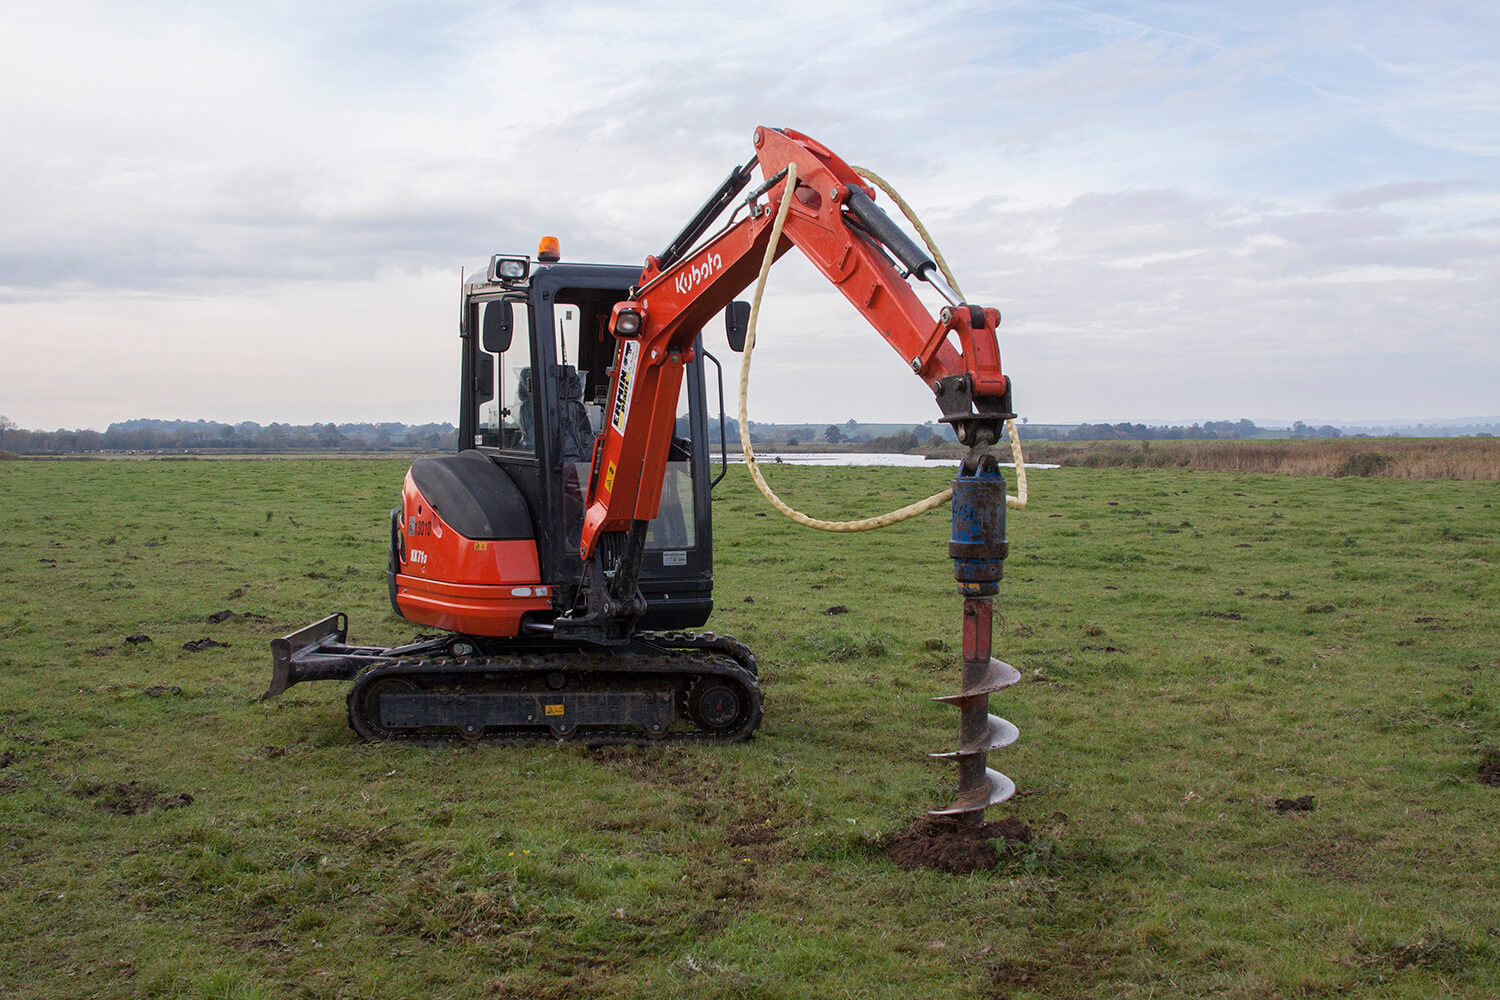 Digger with Auger Attach